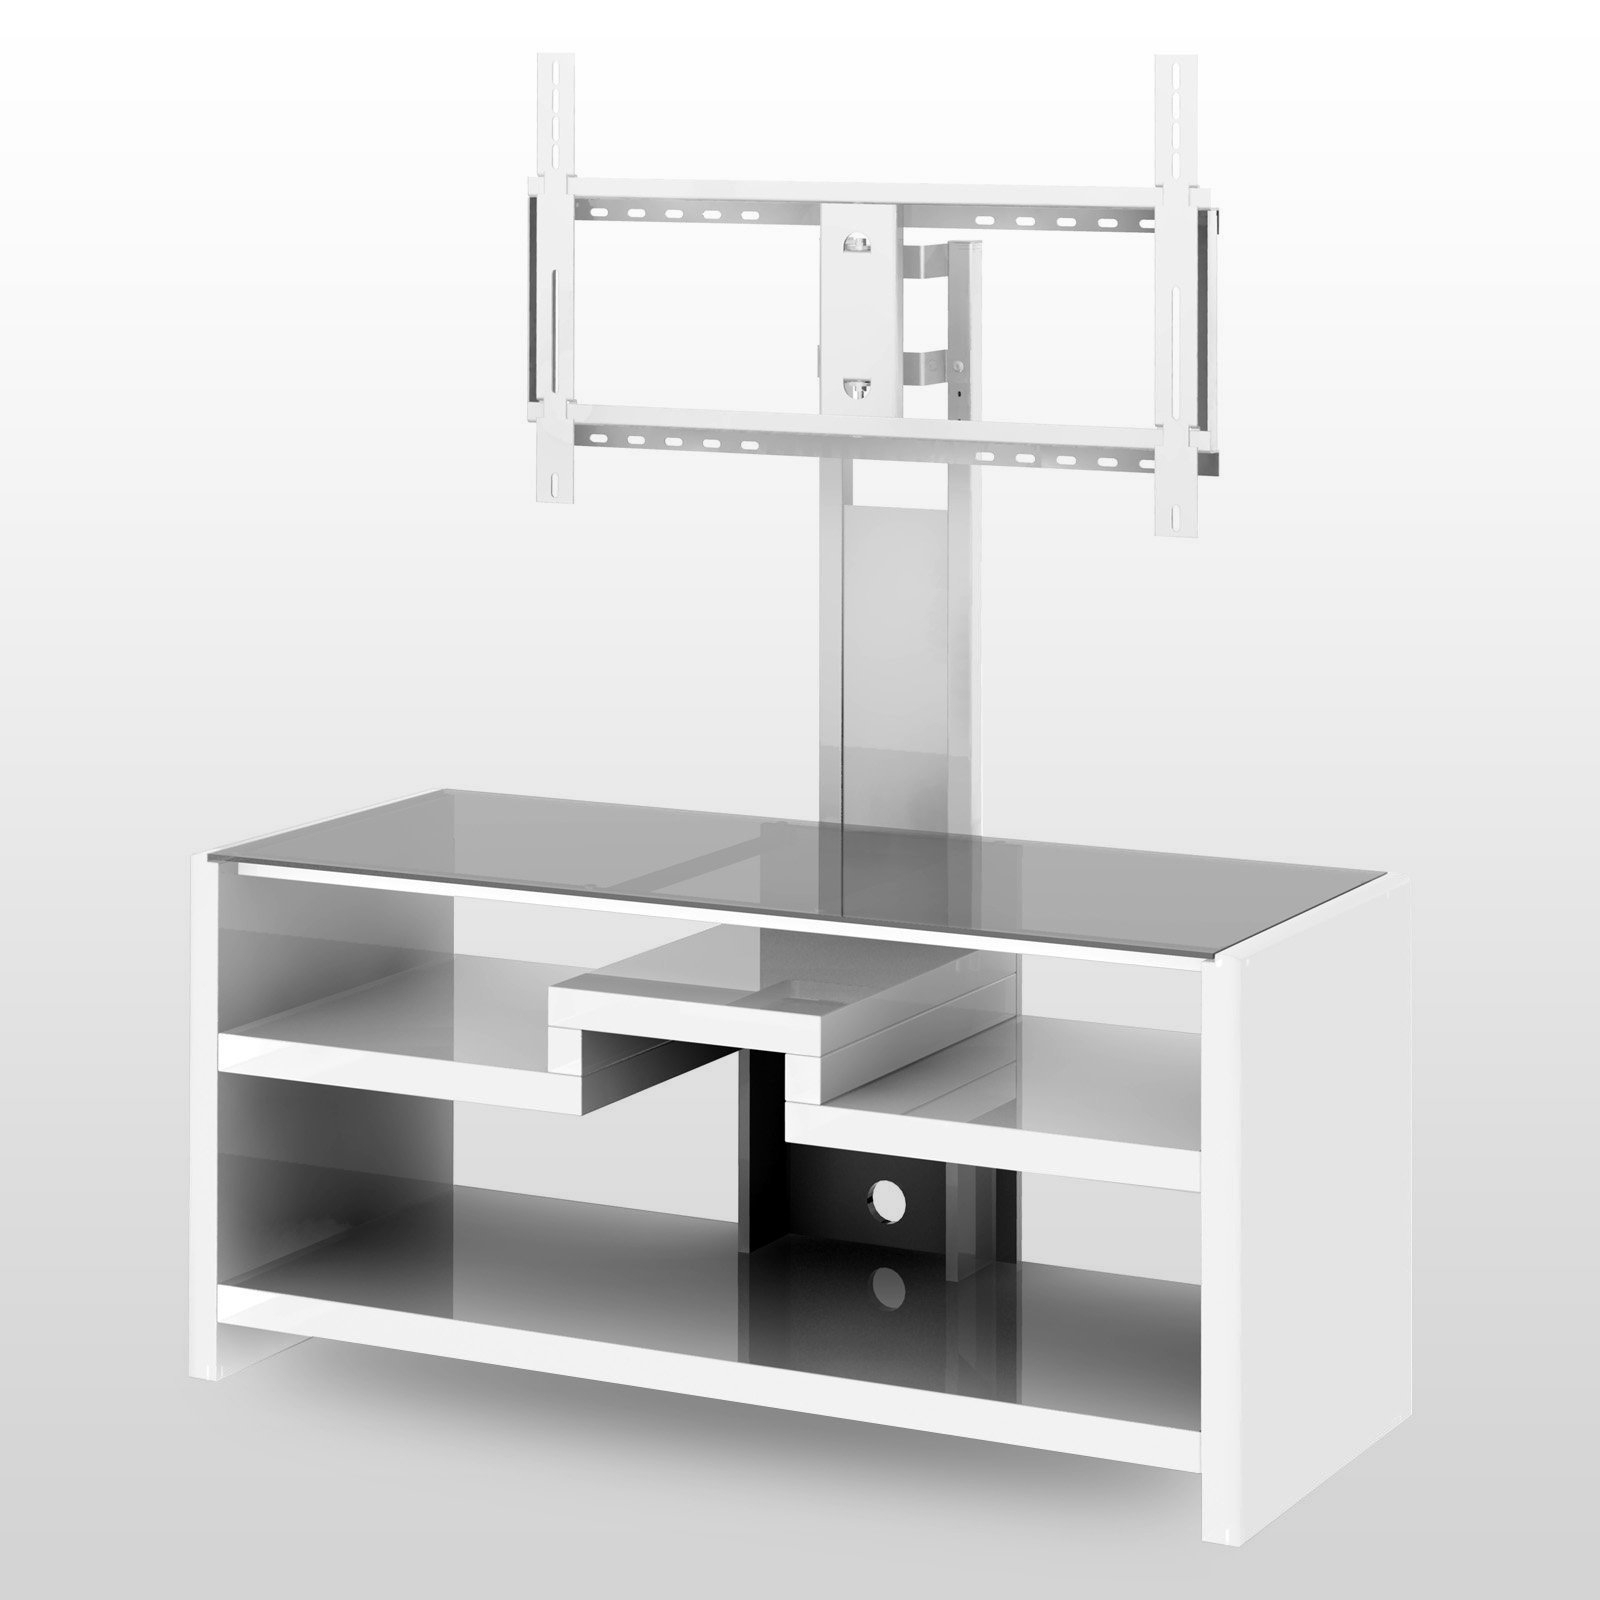 Delectable White Tv Unit Wall Mounted Wood Grey Hung Screens Black With Trendy Small White Tv Cabinets (View 2 of 20)